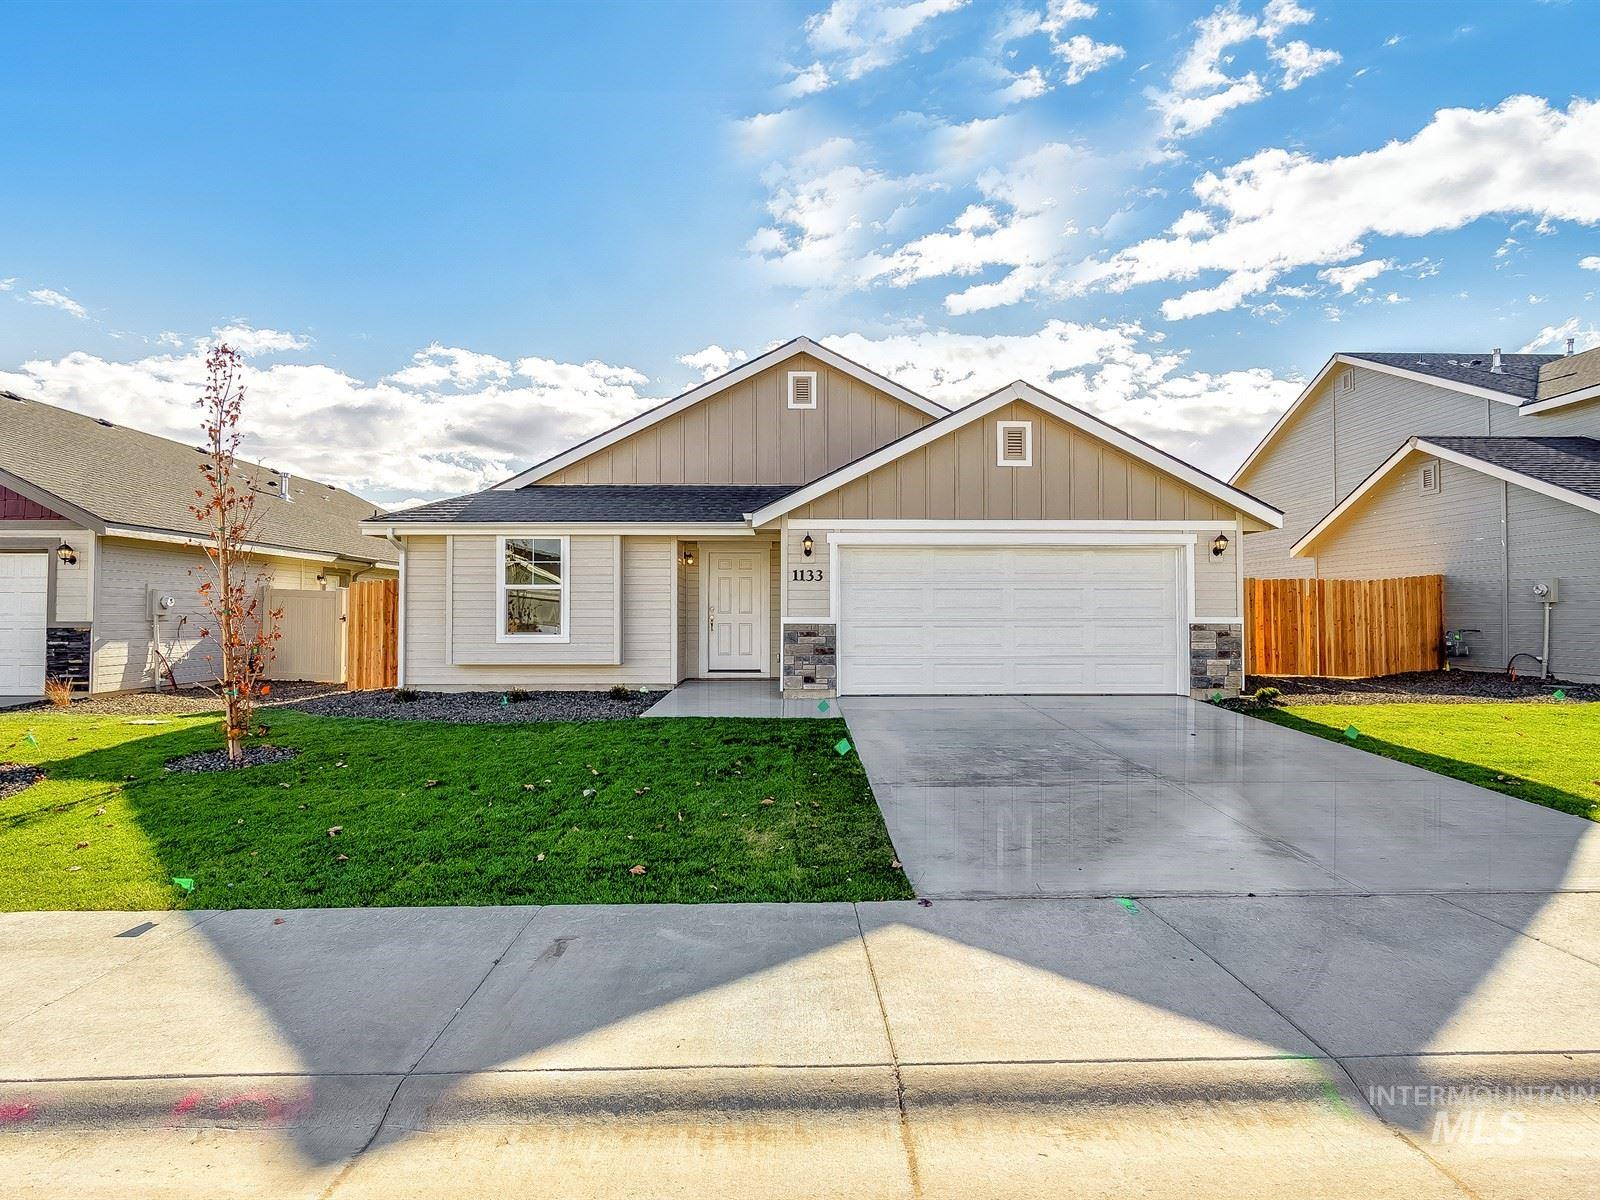 3042 N Cherry Grove Way, Star, Idaho 83669, 3 Bedrooms, 2 Bathrooms, Residential For Sale, Price $364,990, 98781579